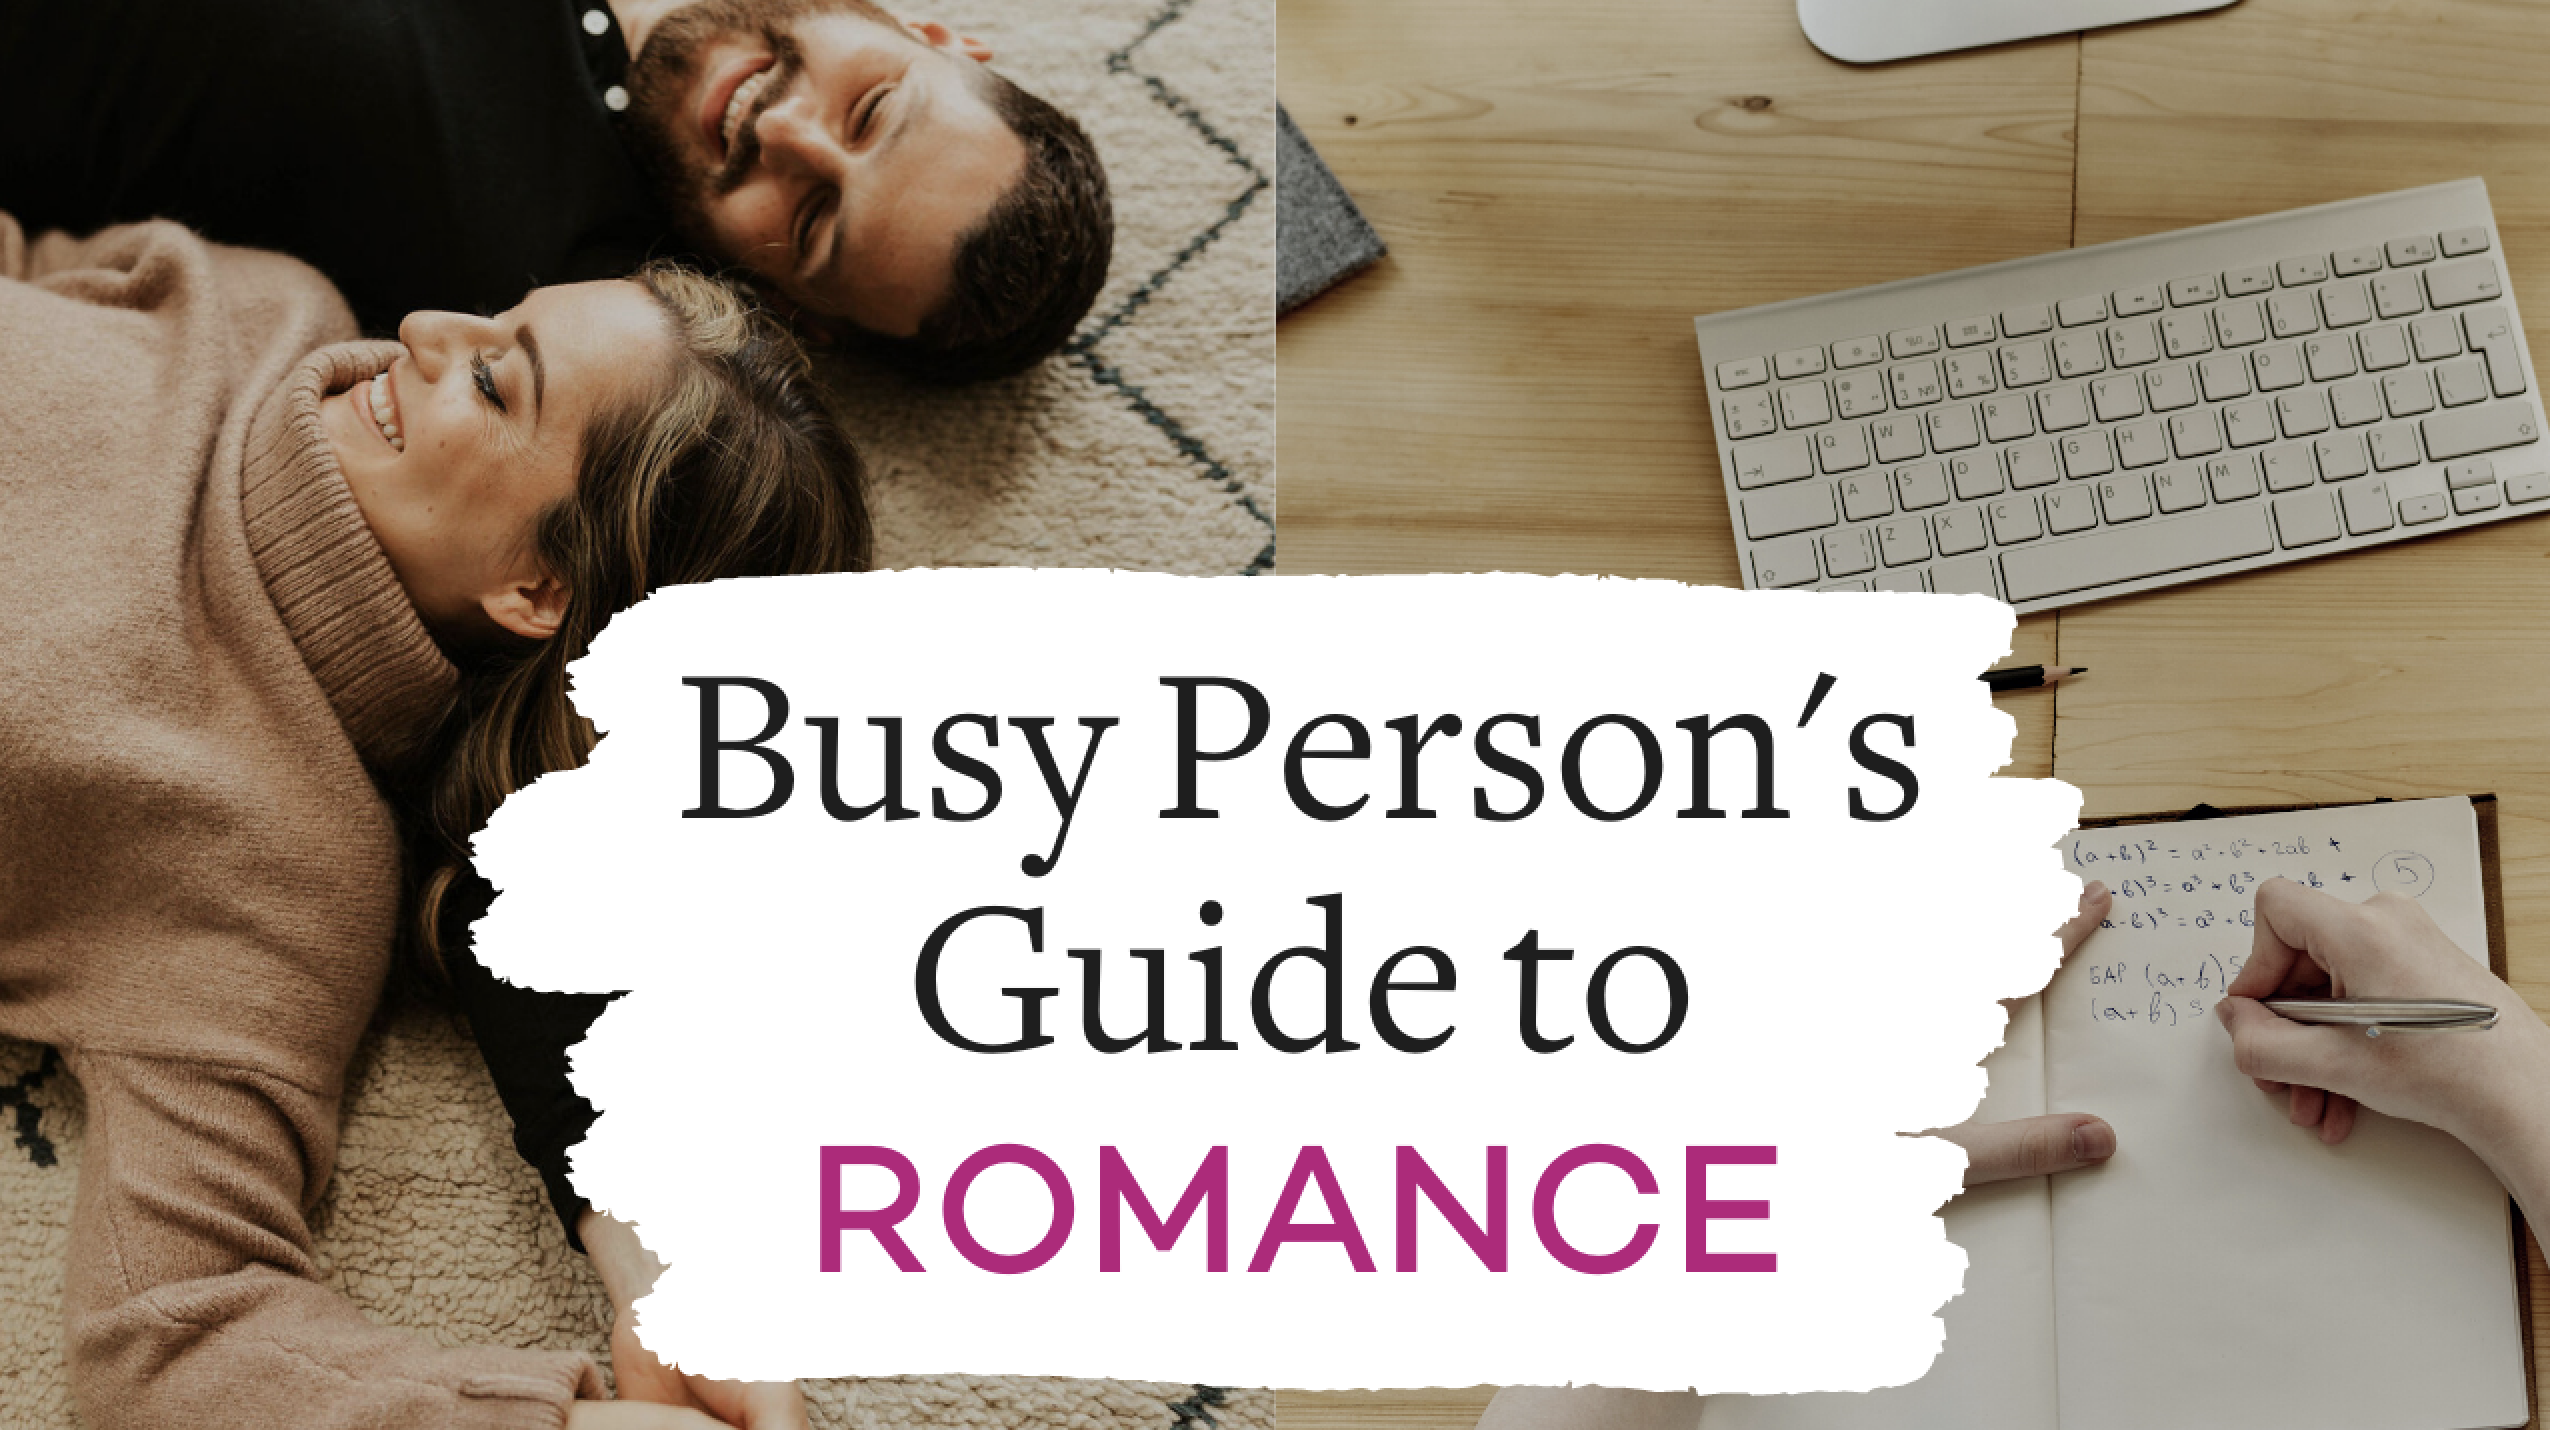 Busy person's guide to romance - How to be romantic when you're too busy   Vanessa Marin Sex Therapy